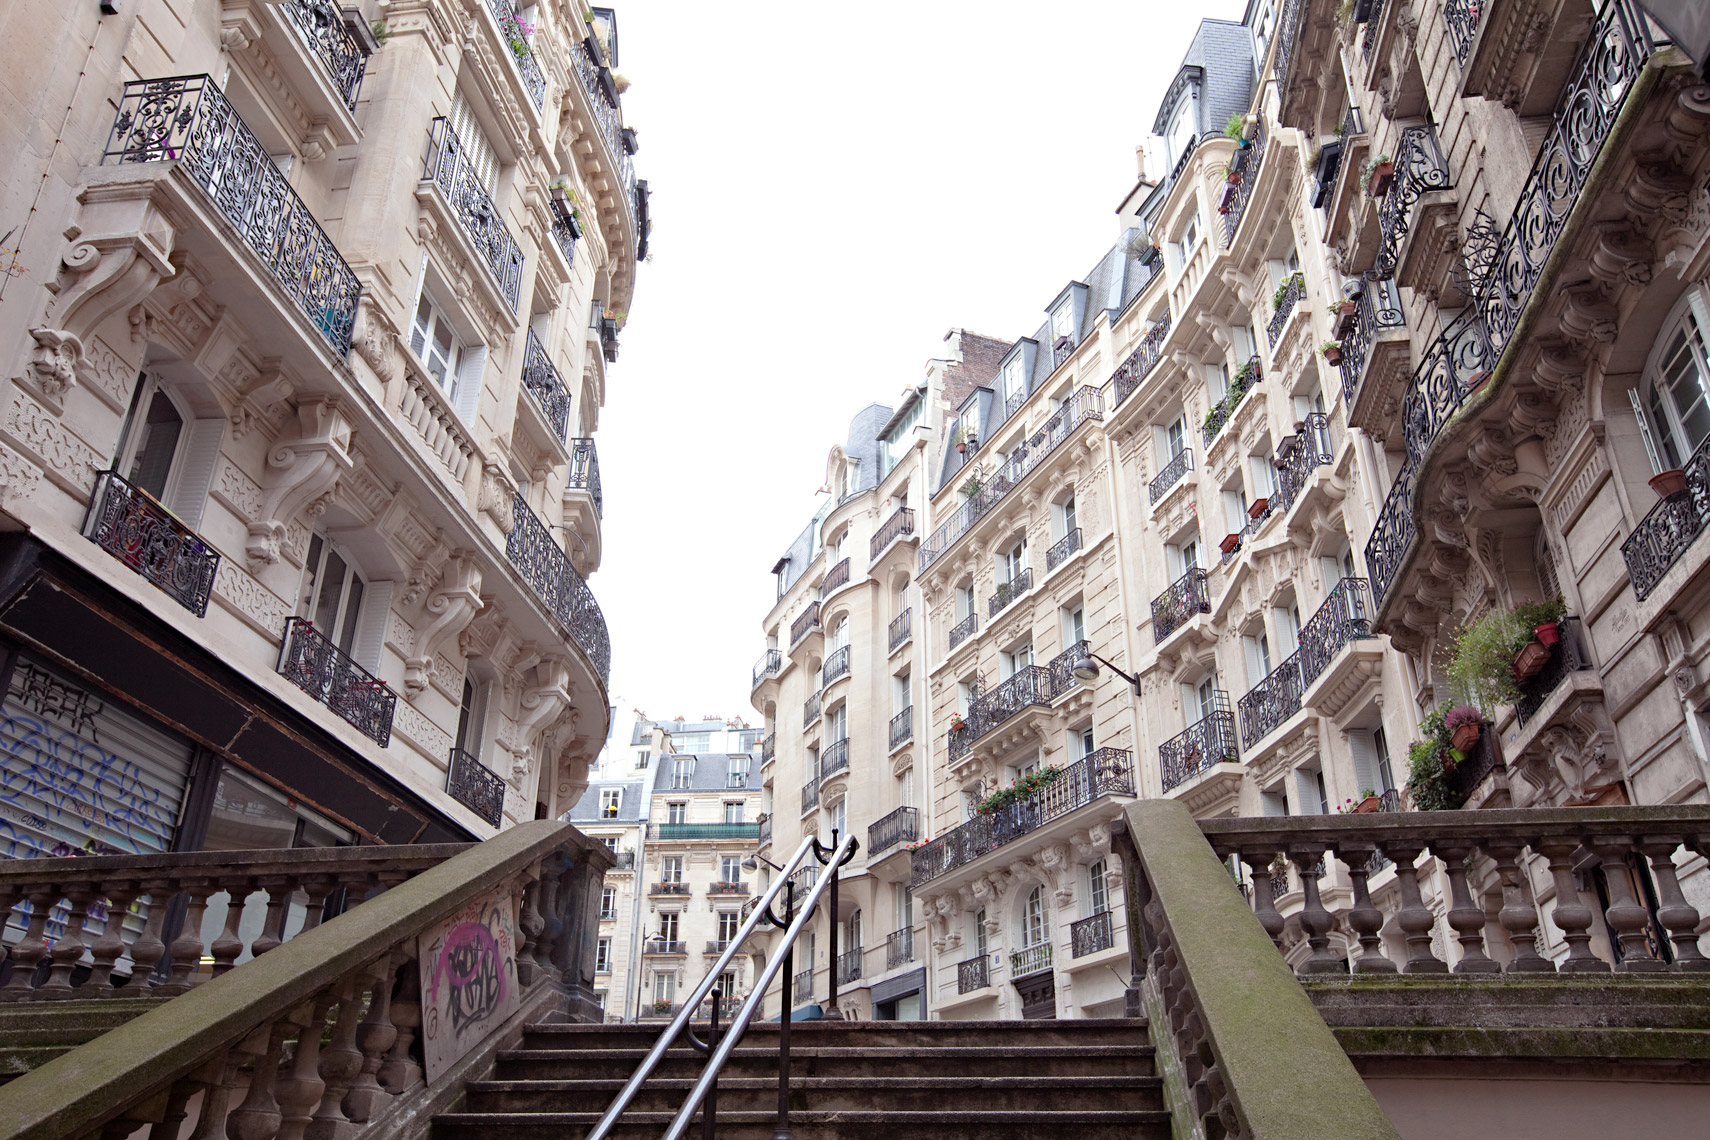 FILETI_PLACE_PARIS_8739